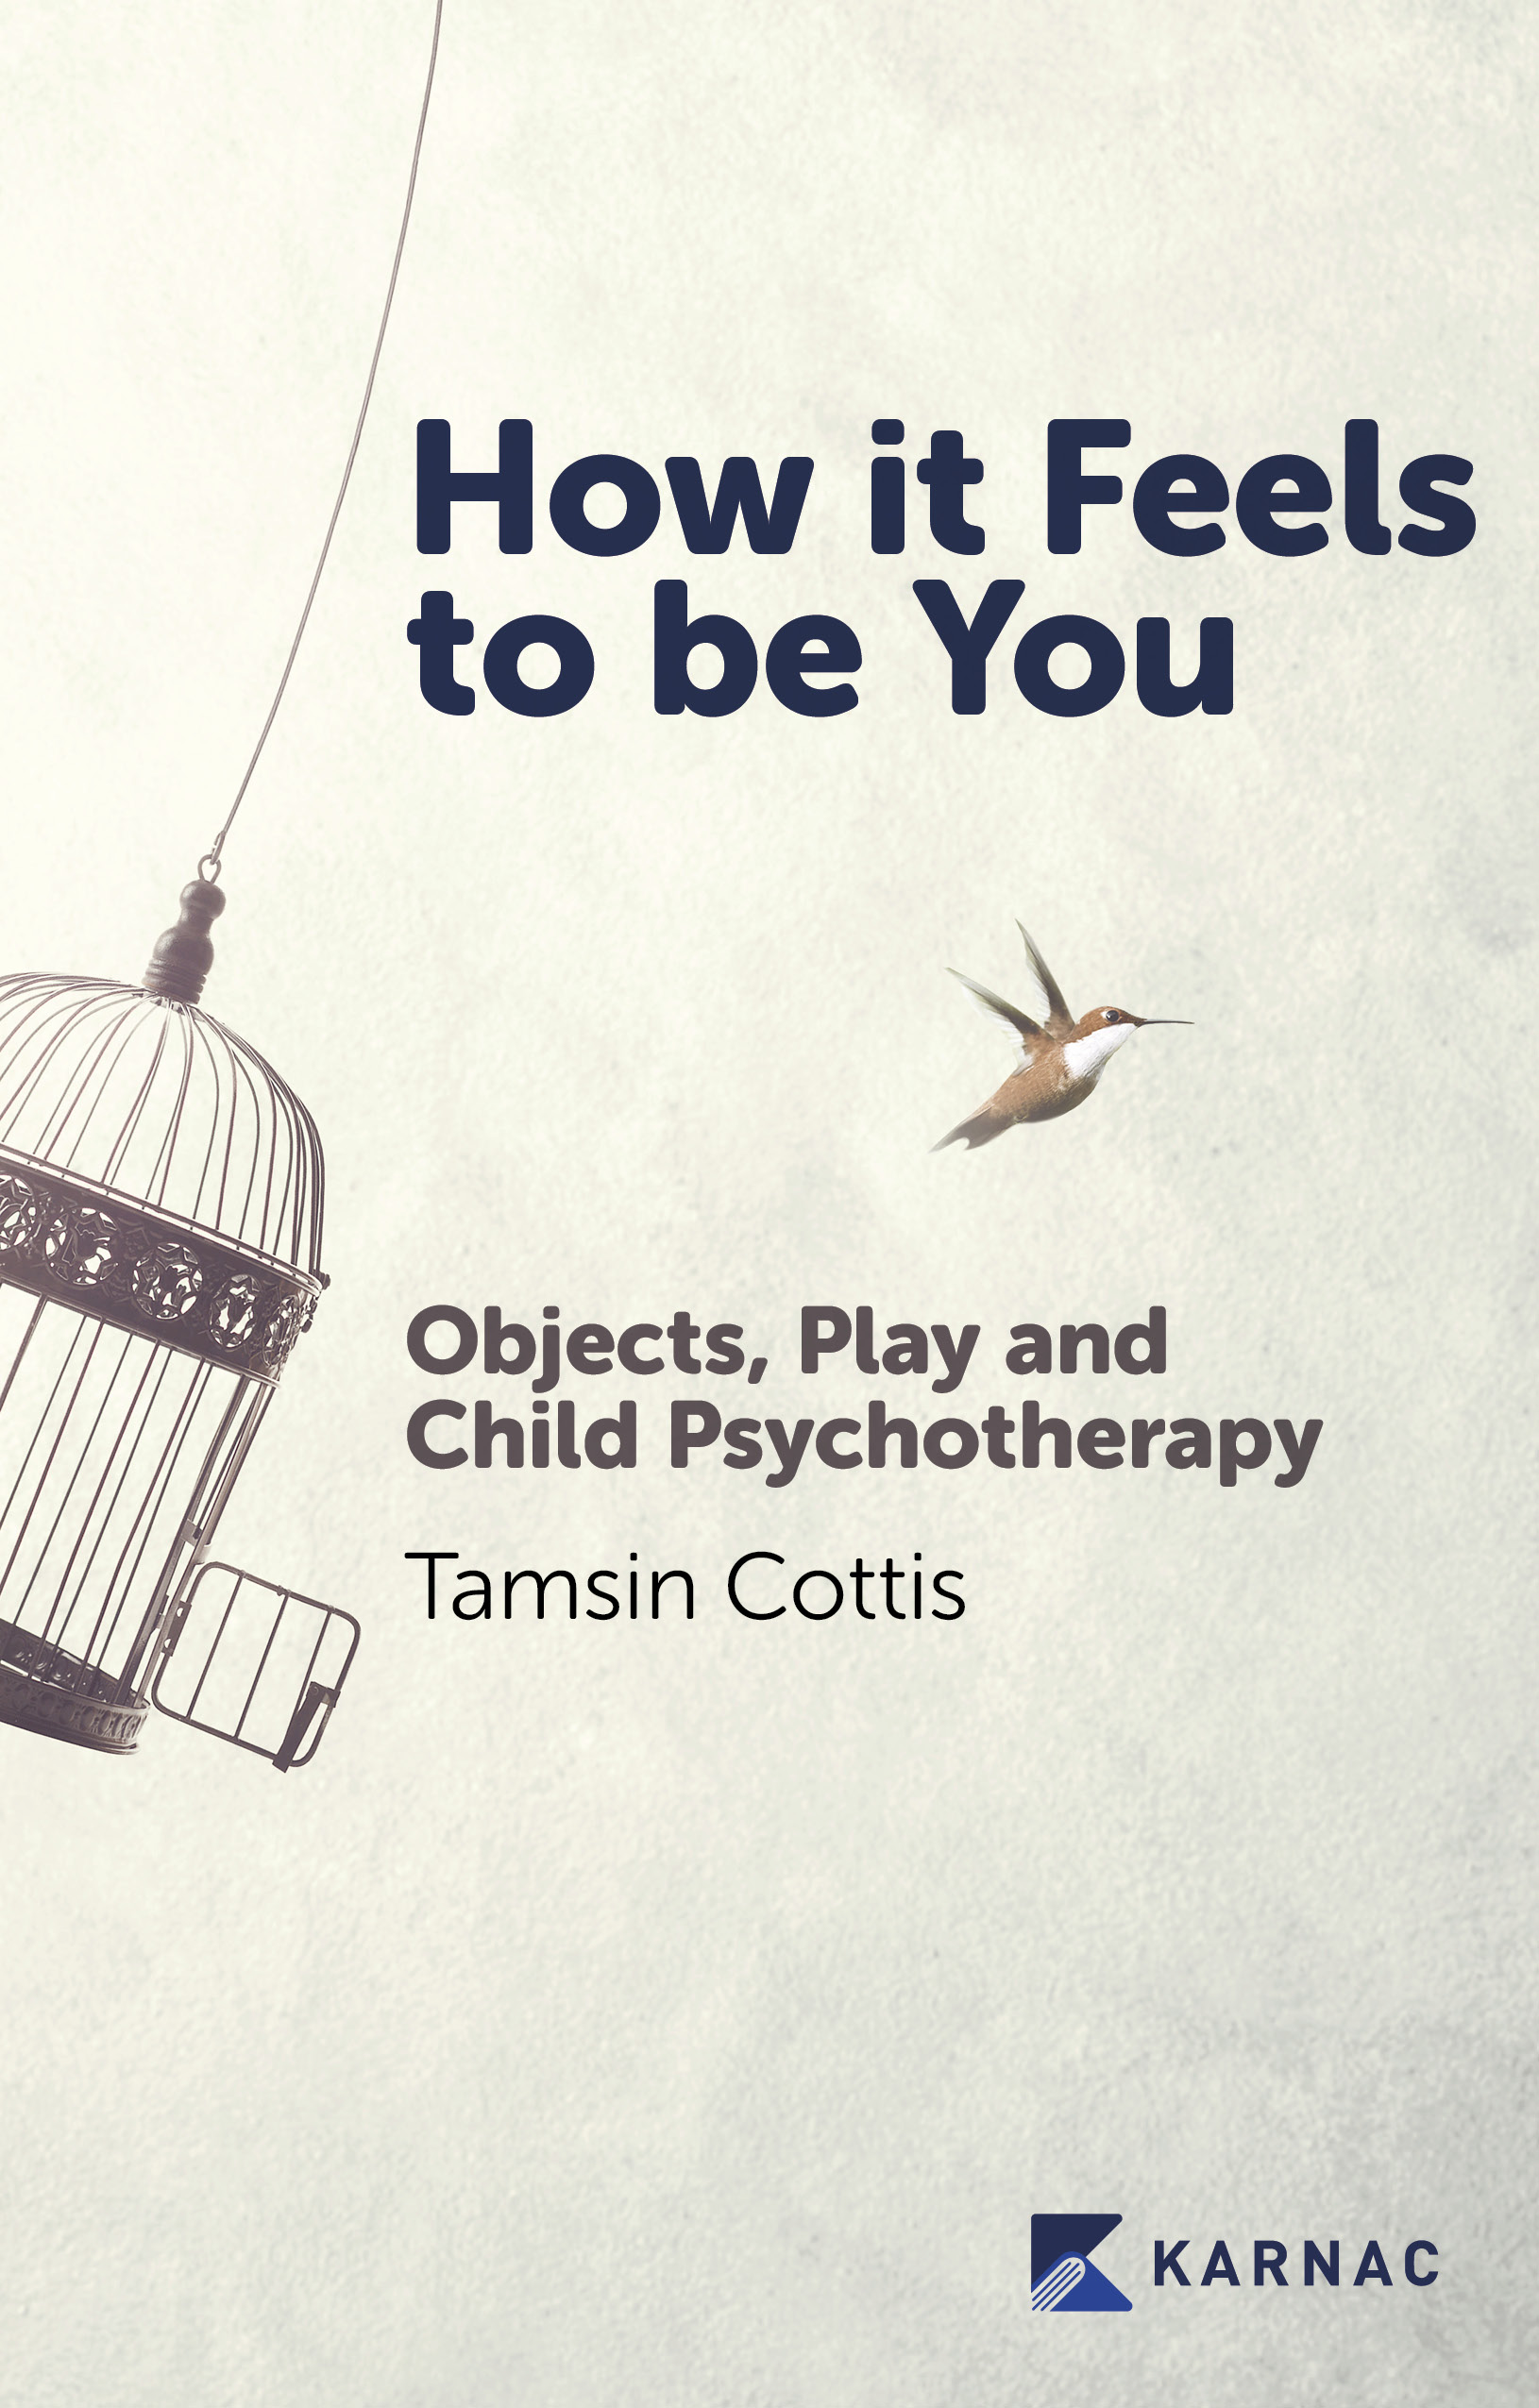 How it Feels to be You: Objects, Play and Child Psychotherapy